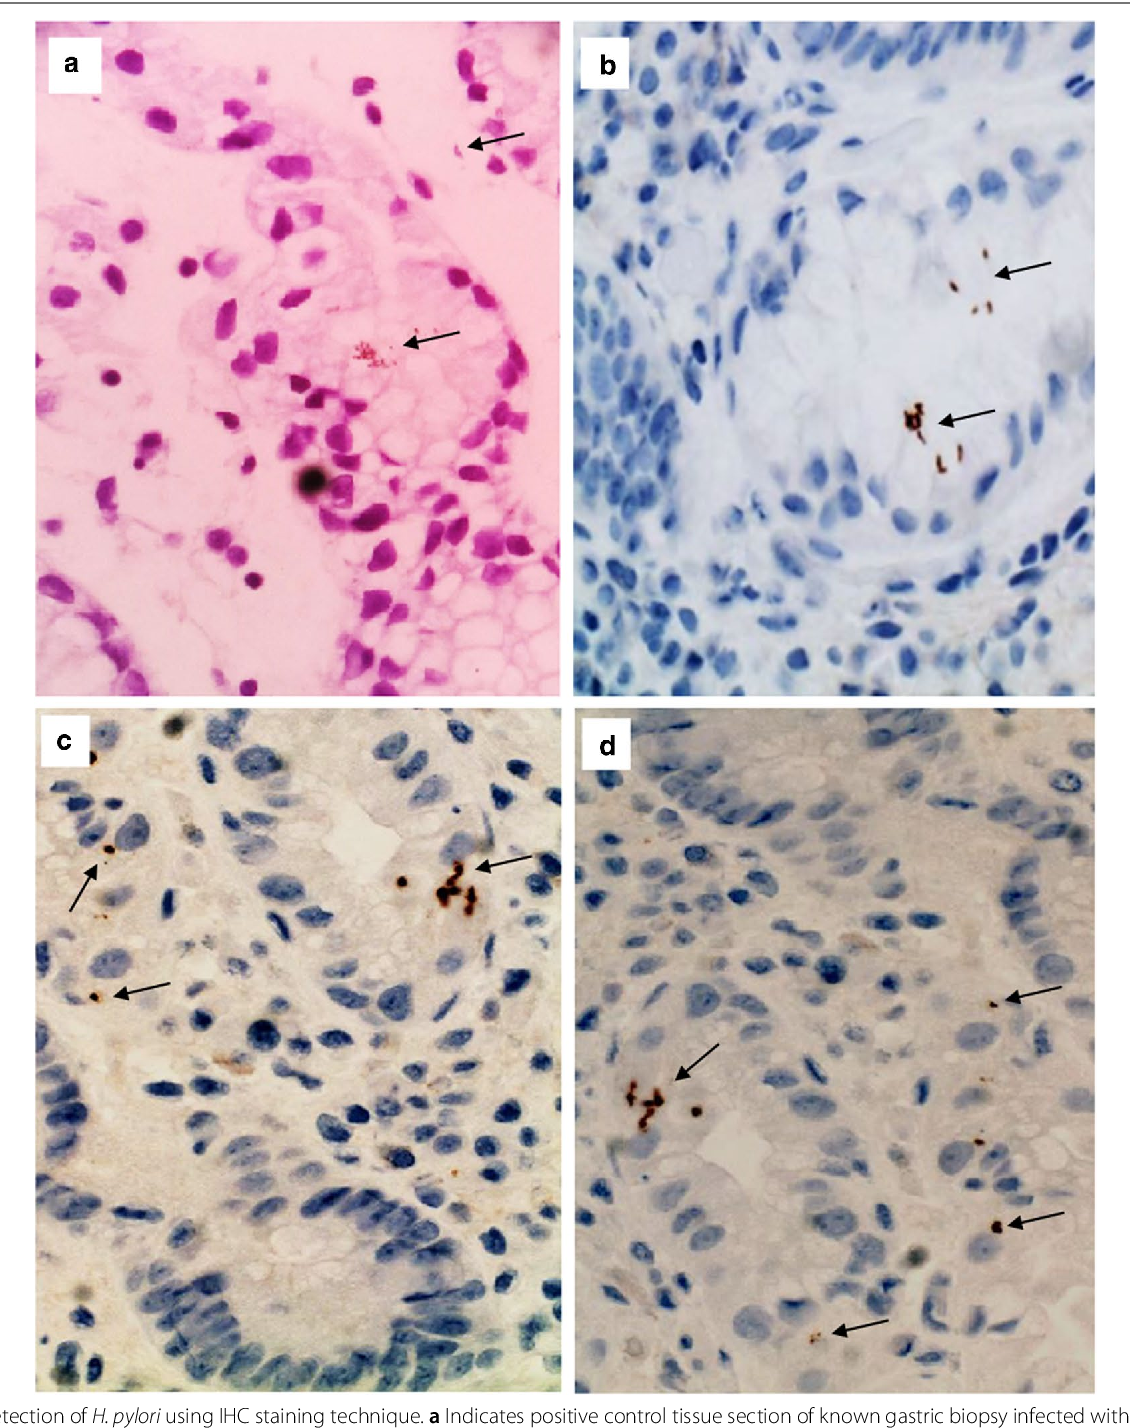 Prevalence Of Helicobacter Pylori Among Sudanese Patients Diagnosed With Colon Polyps And Colon Cancer Using Immunohistochemistry Technique Semantic Scholar